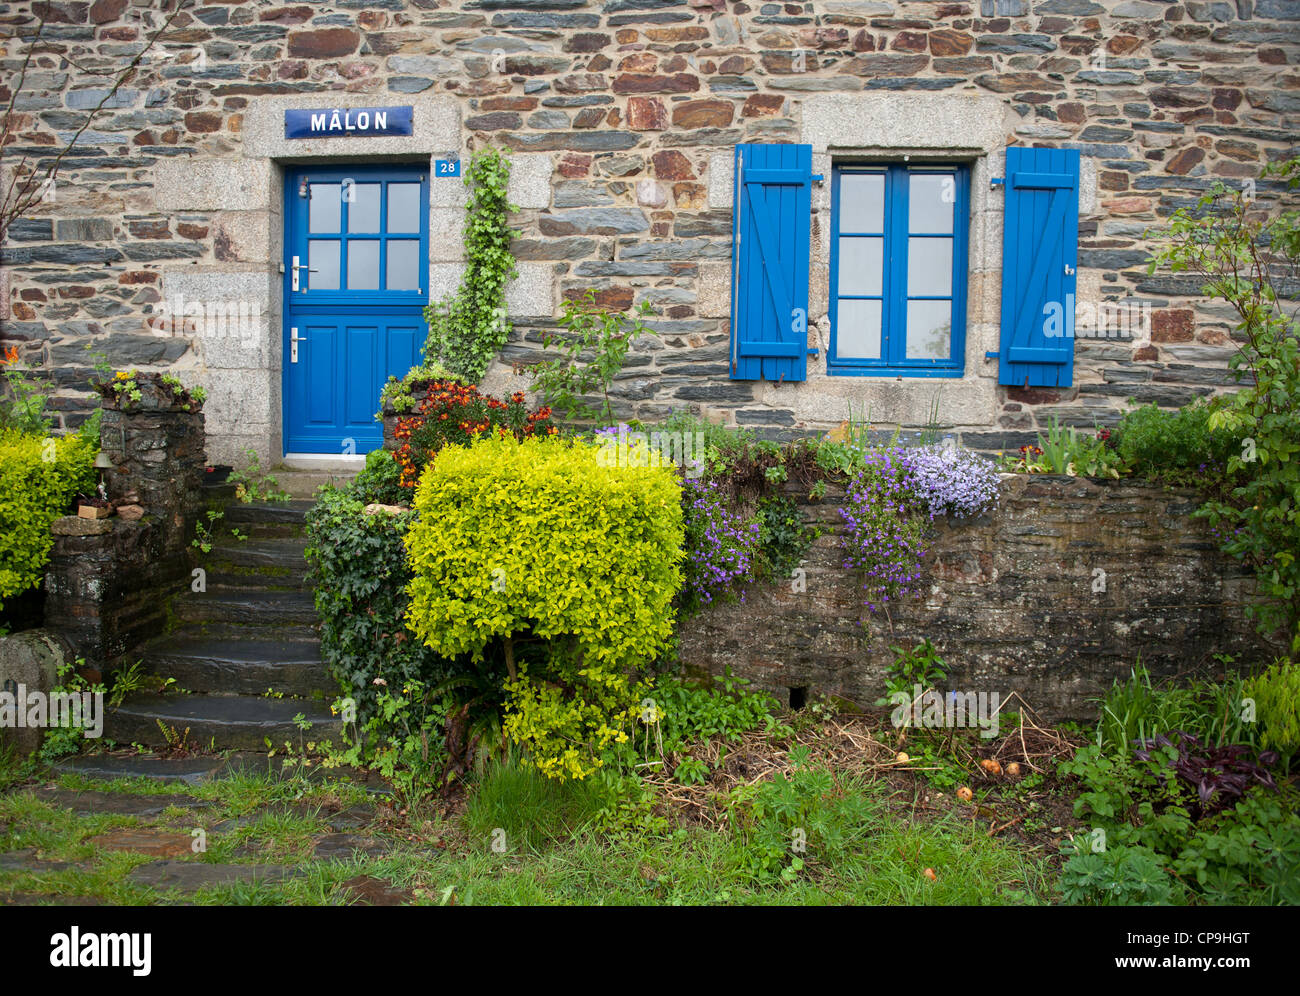 Traditional stone house of the lock keeper at Mâlon on the Vilaine river in Brittany, France Stock Photo